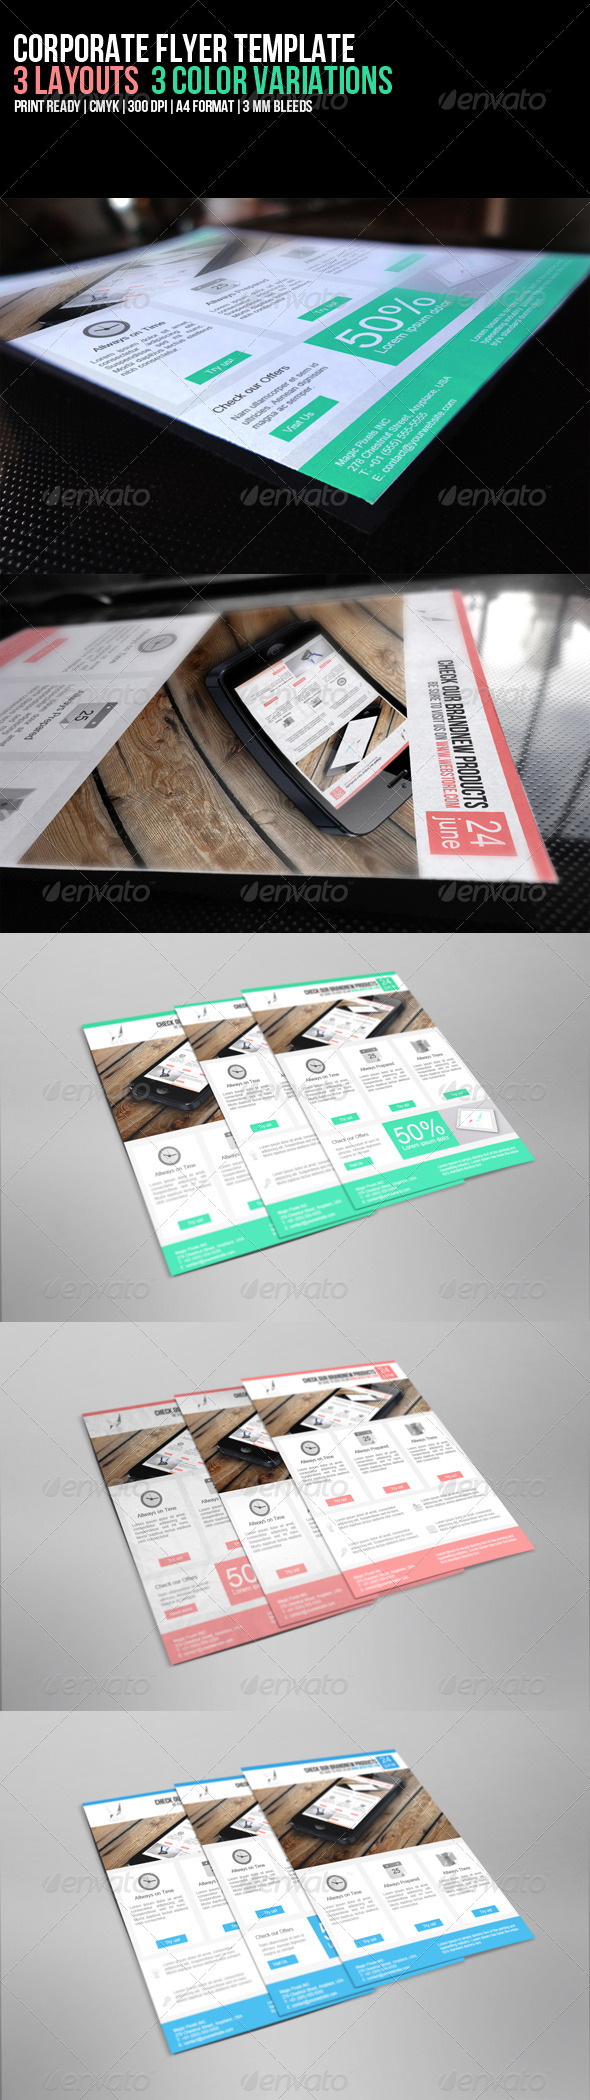 GraphicRiver Corporate Flyer Template 5325047